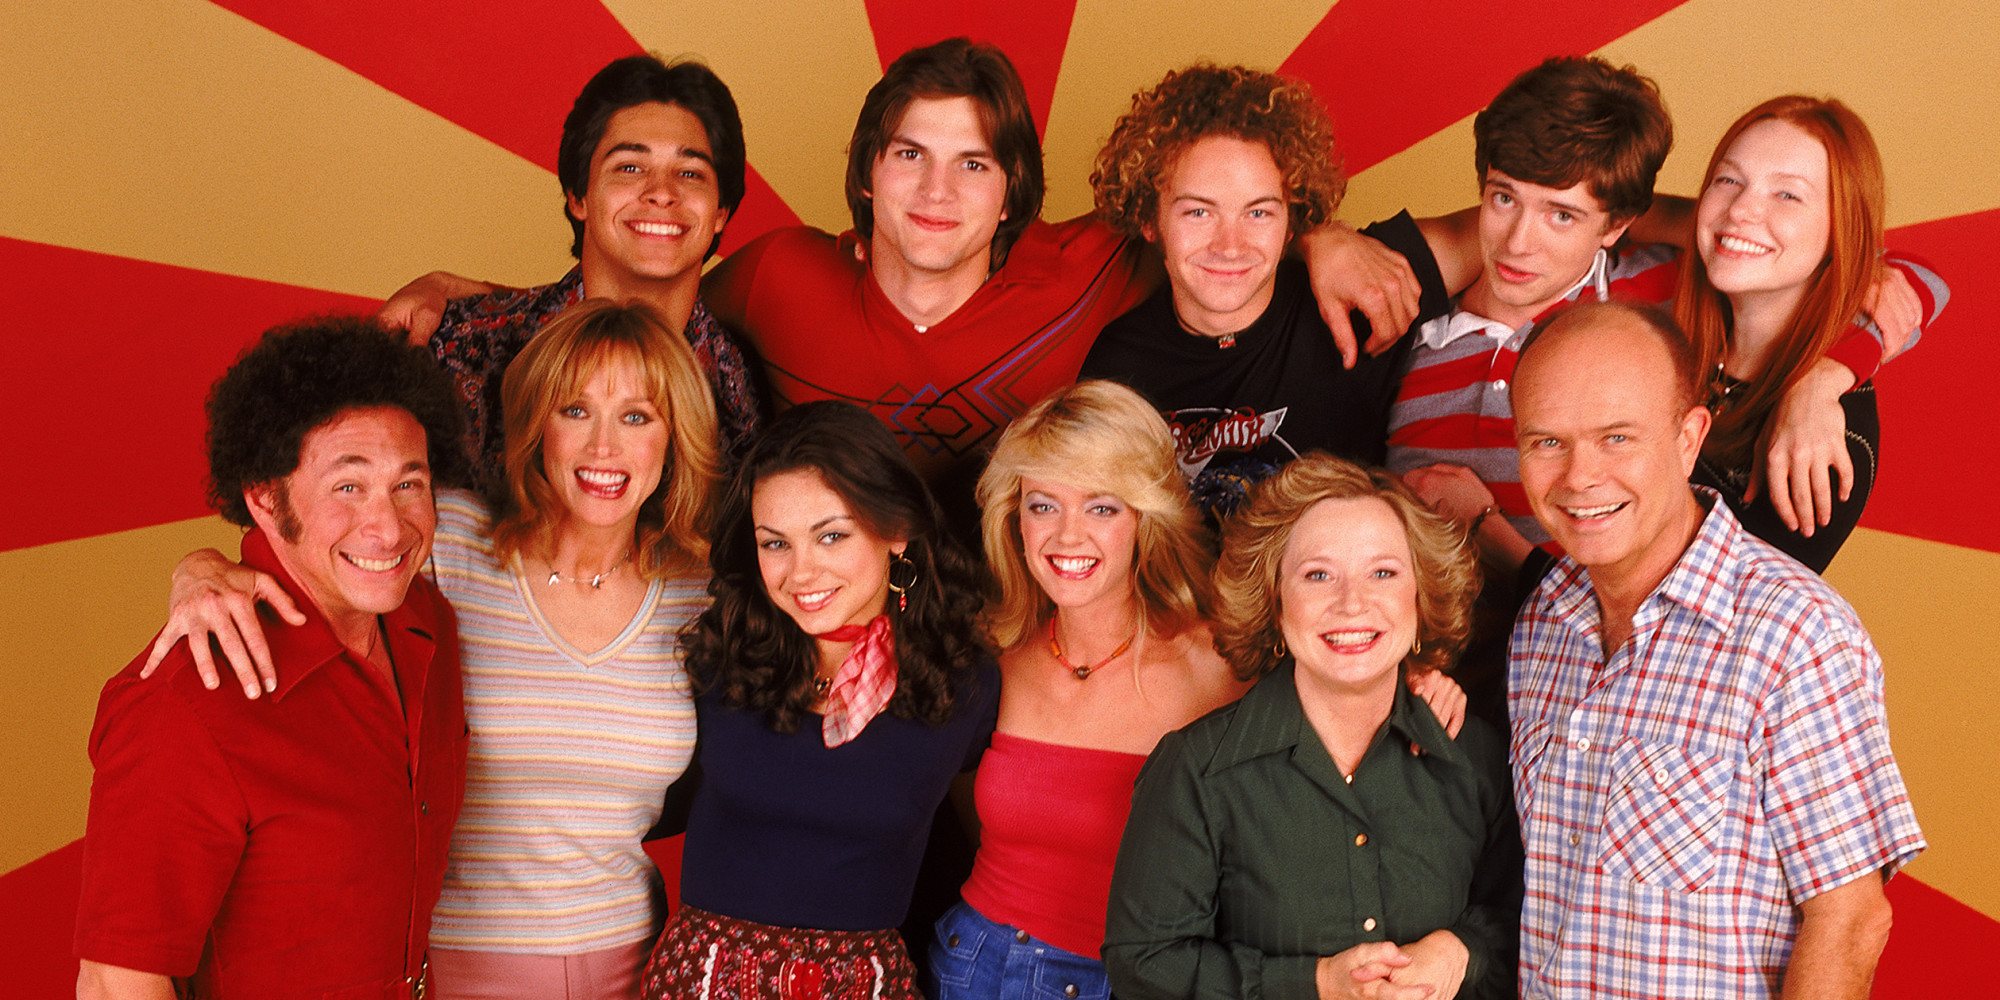 That 70s Show Reunion Cast Sings Show Theme Song Together